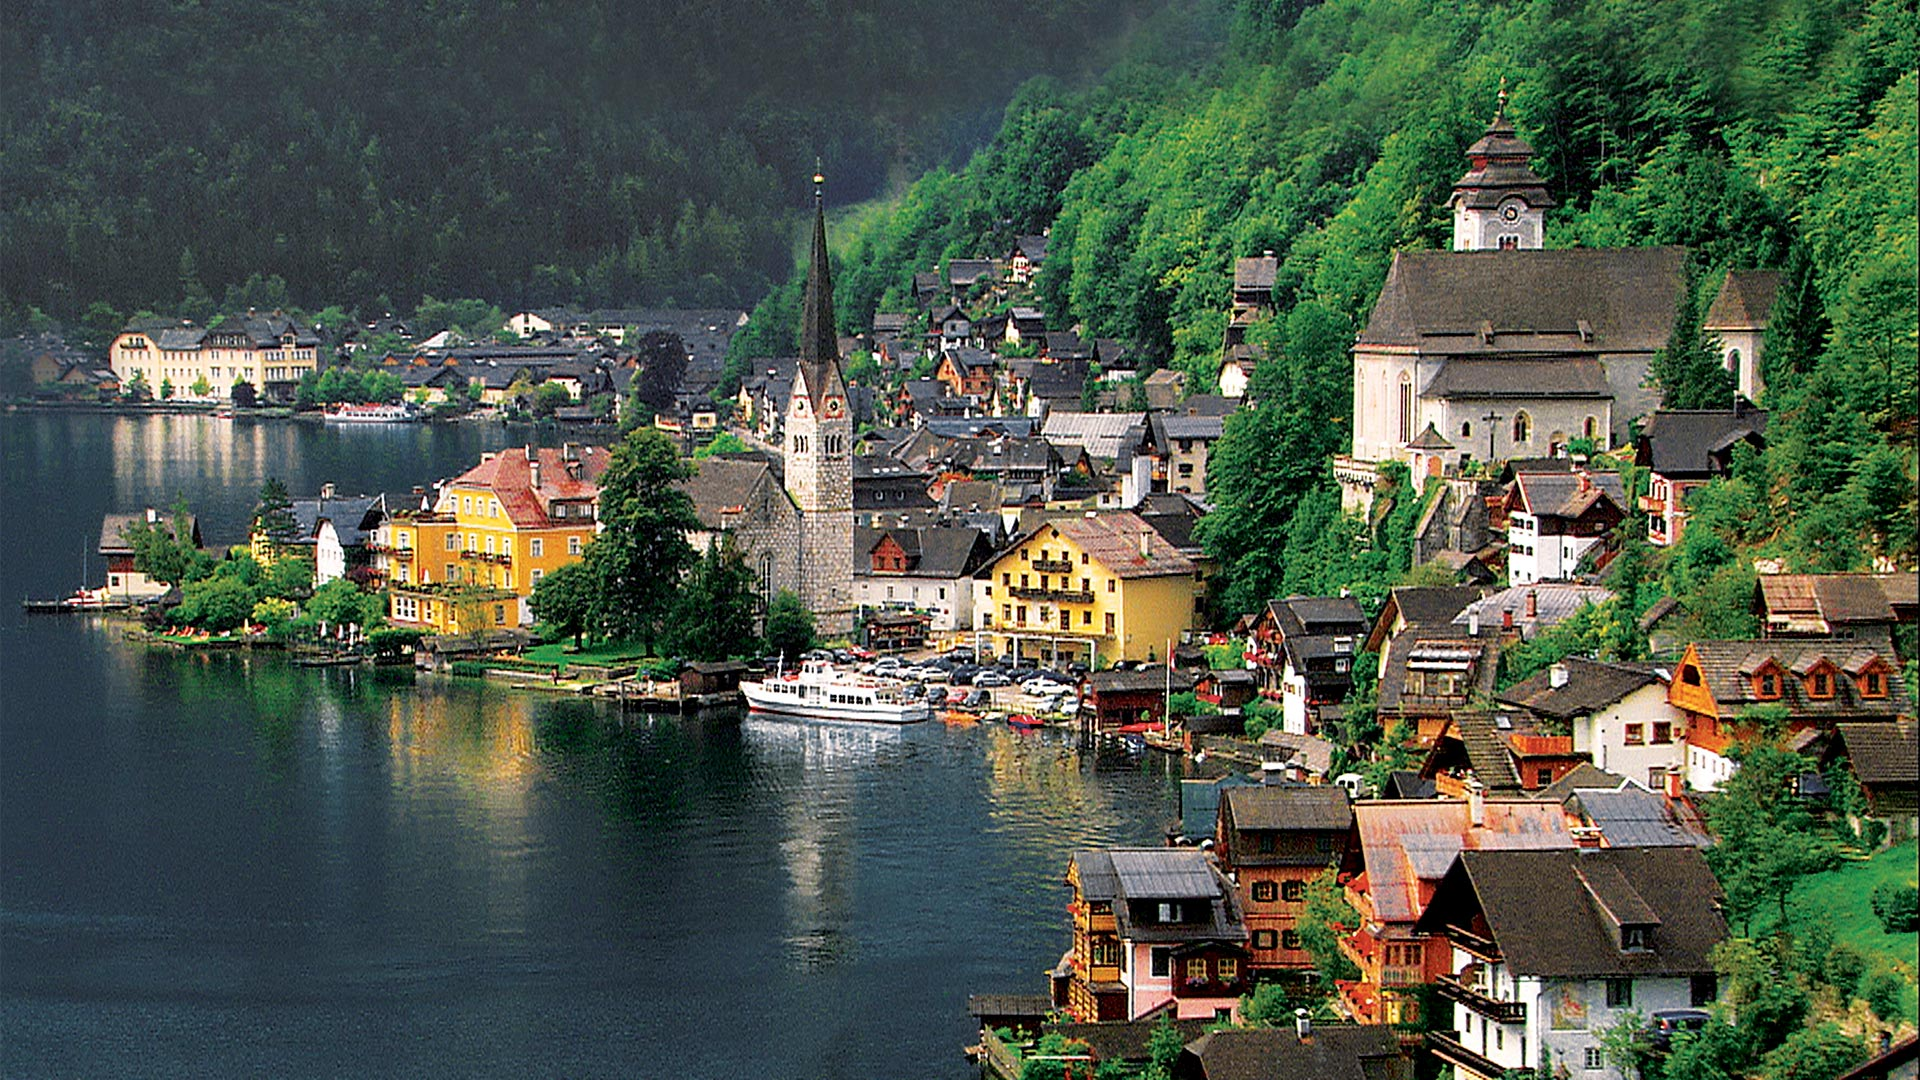 Hallstatt, Austria's most beautiful lake town